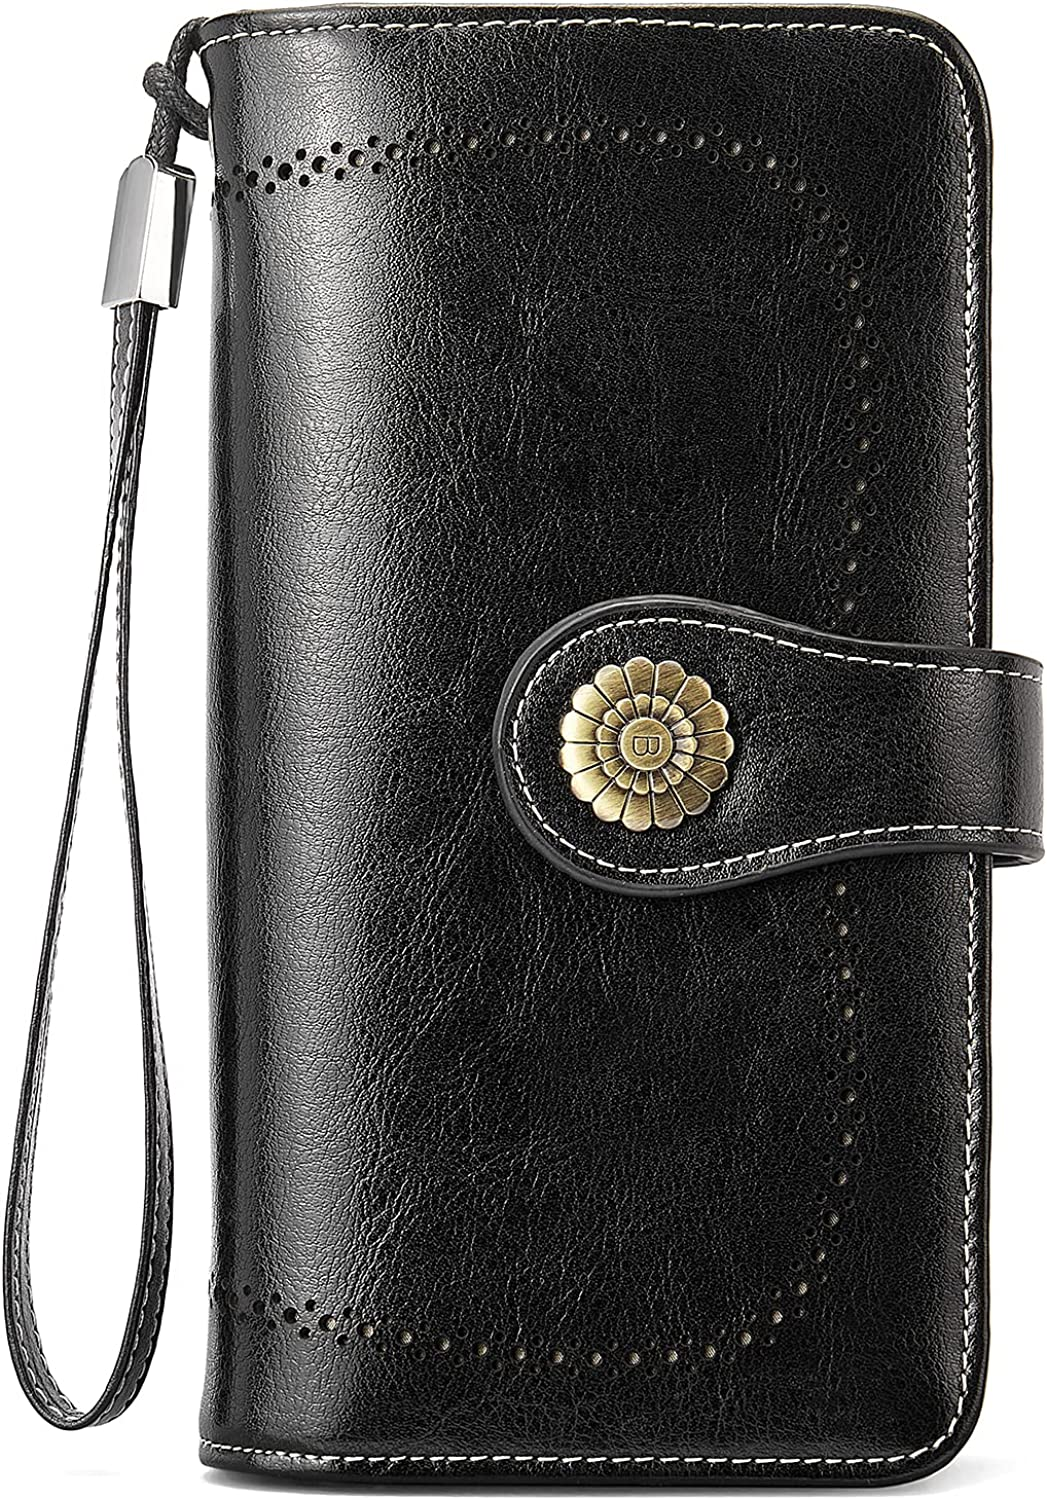 Ranking TOP16 BOSTANTEN Womens Wallet Genuine Capacity Leather Large Wristlet 67% OFF of fixed price